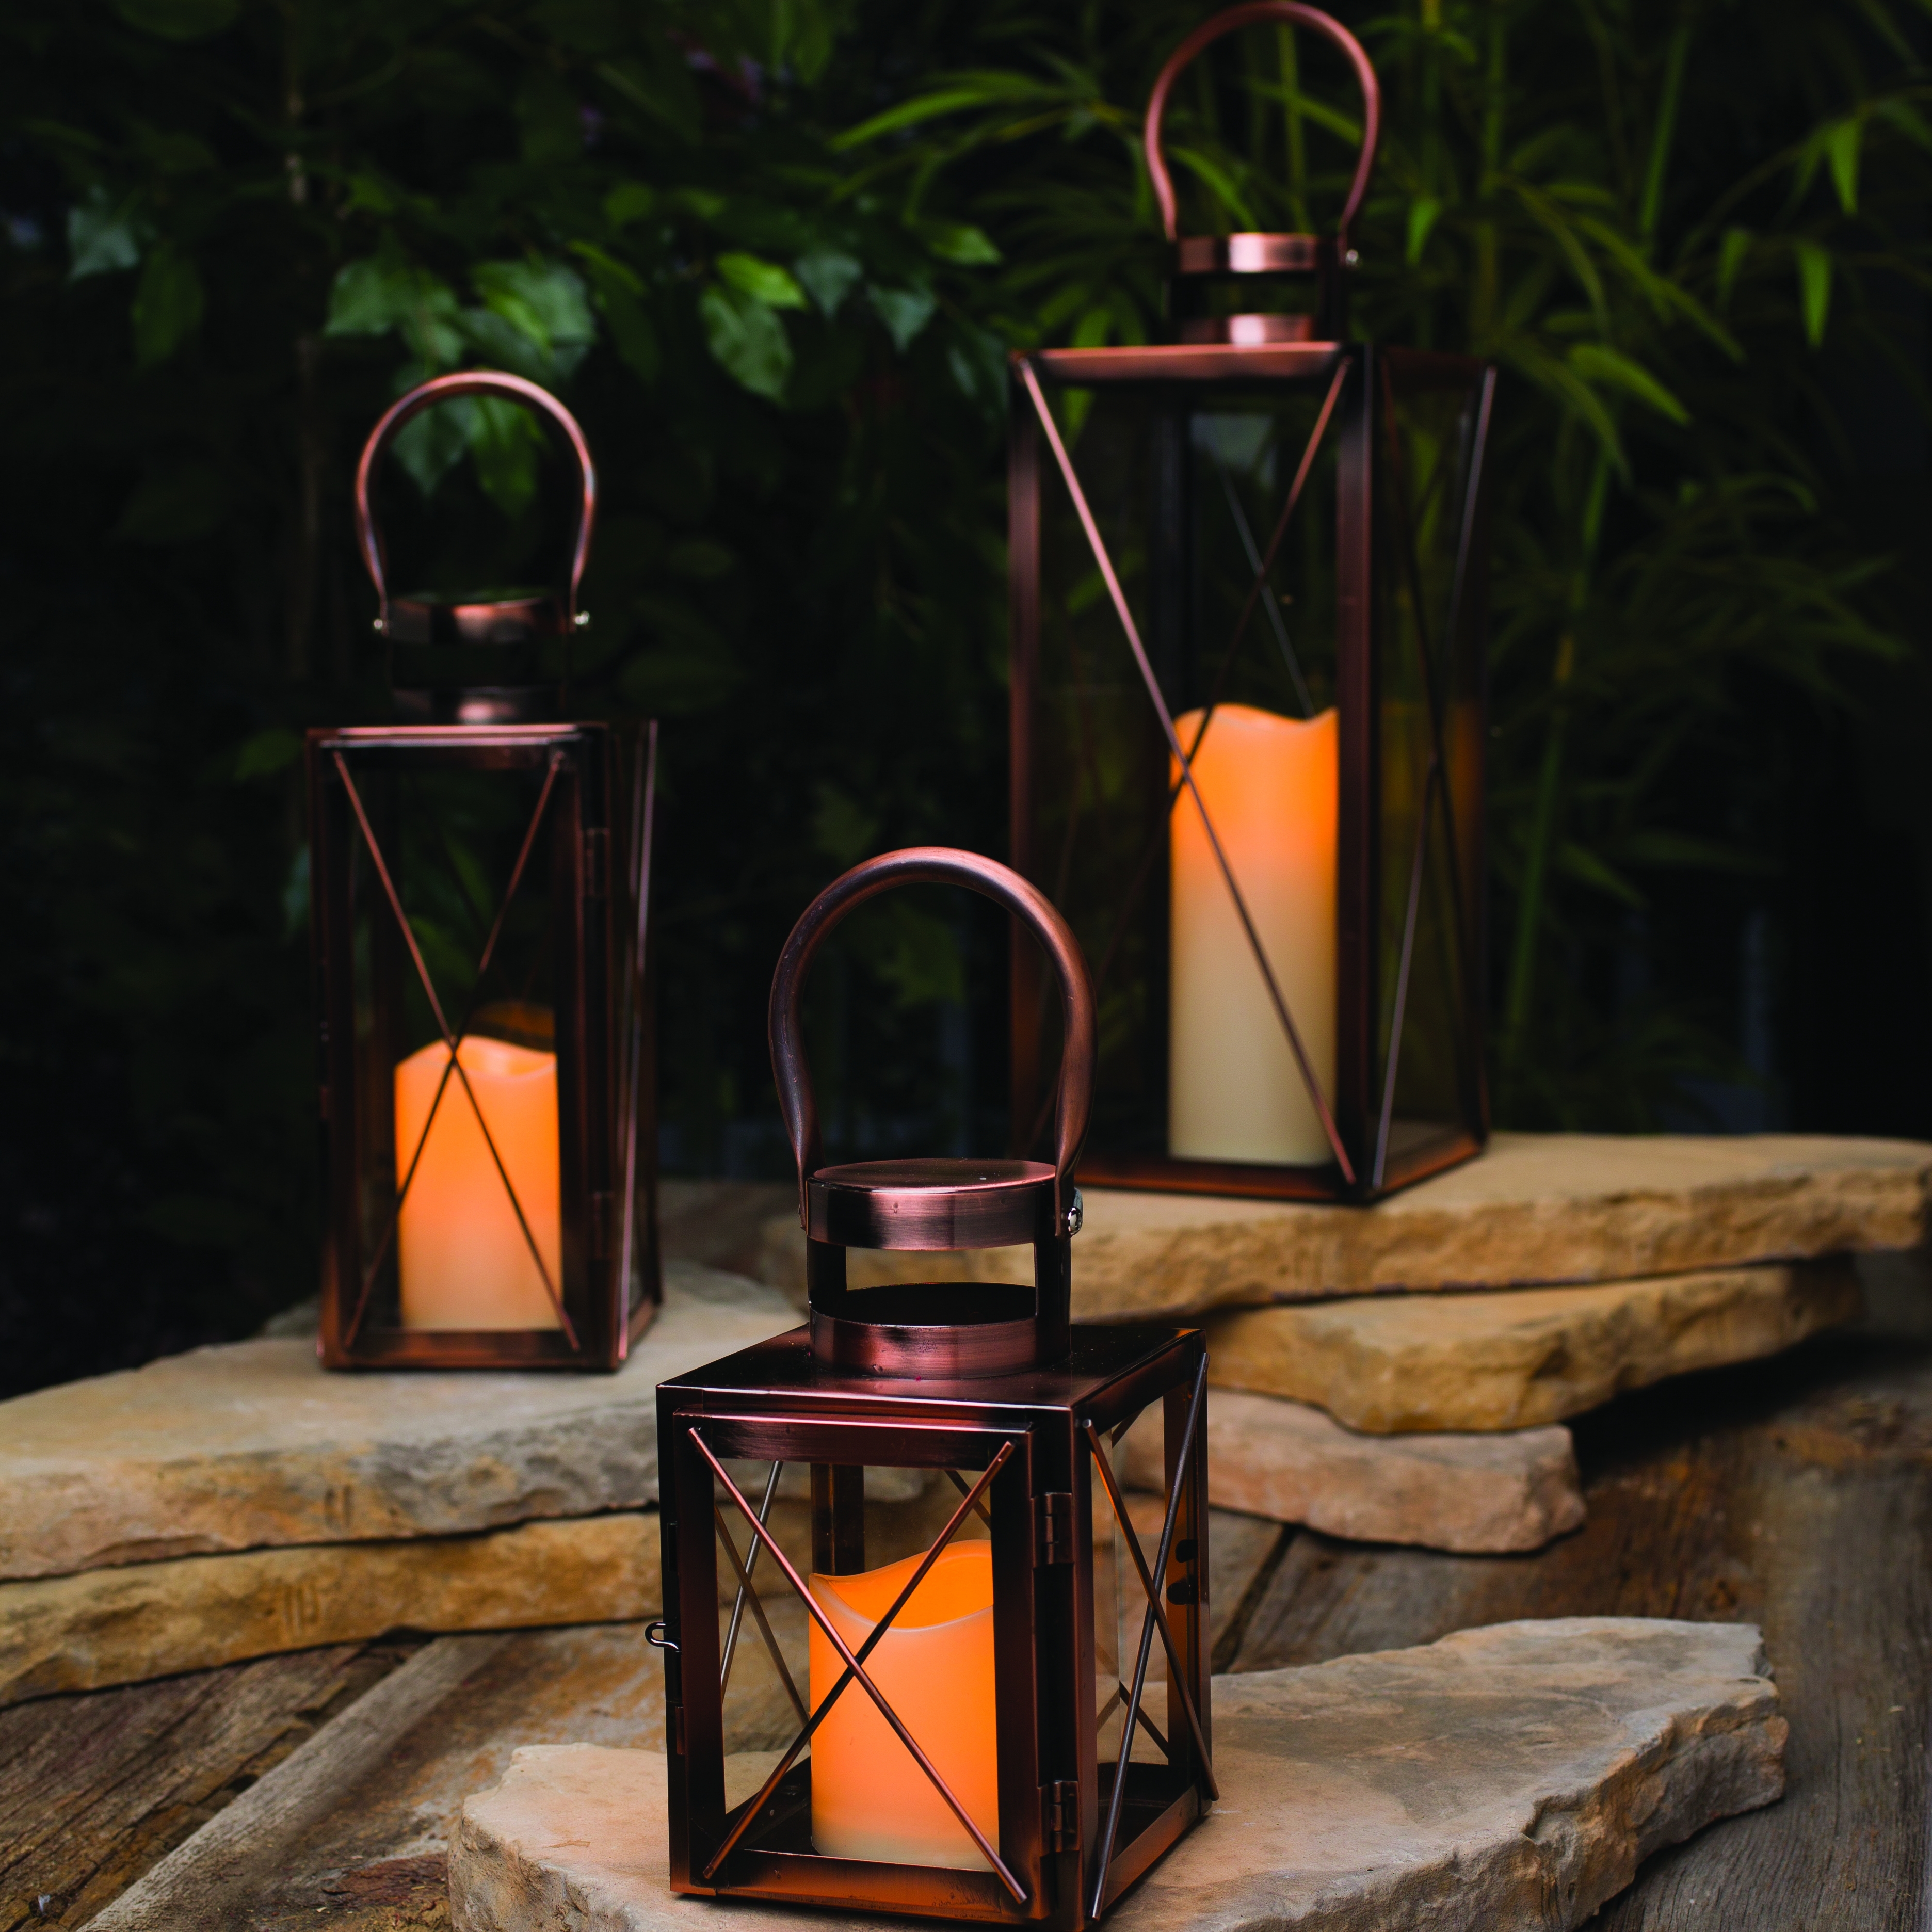 Outdoor Lanterns And Candles Within Fashionable Lighting: Brighten Up Your Space With Stunning Candle Lanterns (View 13 of 20)